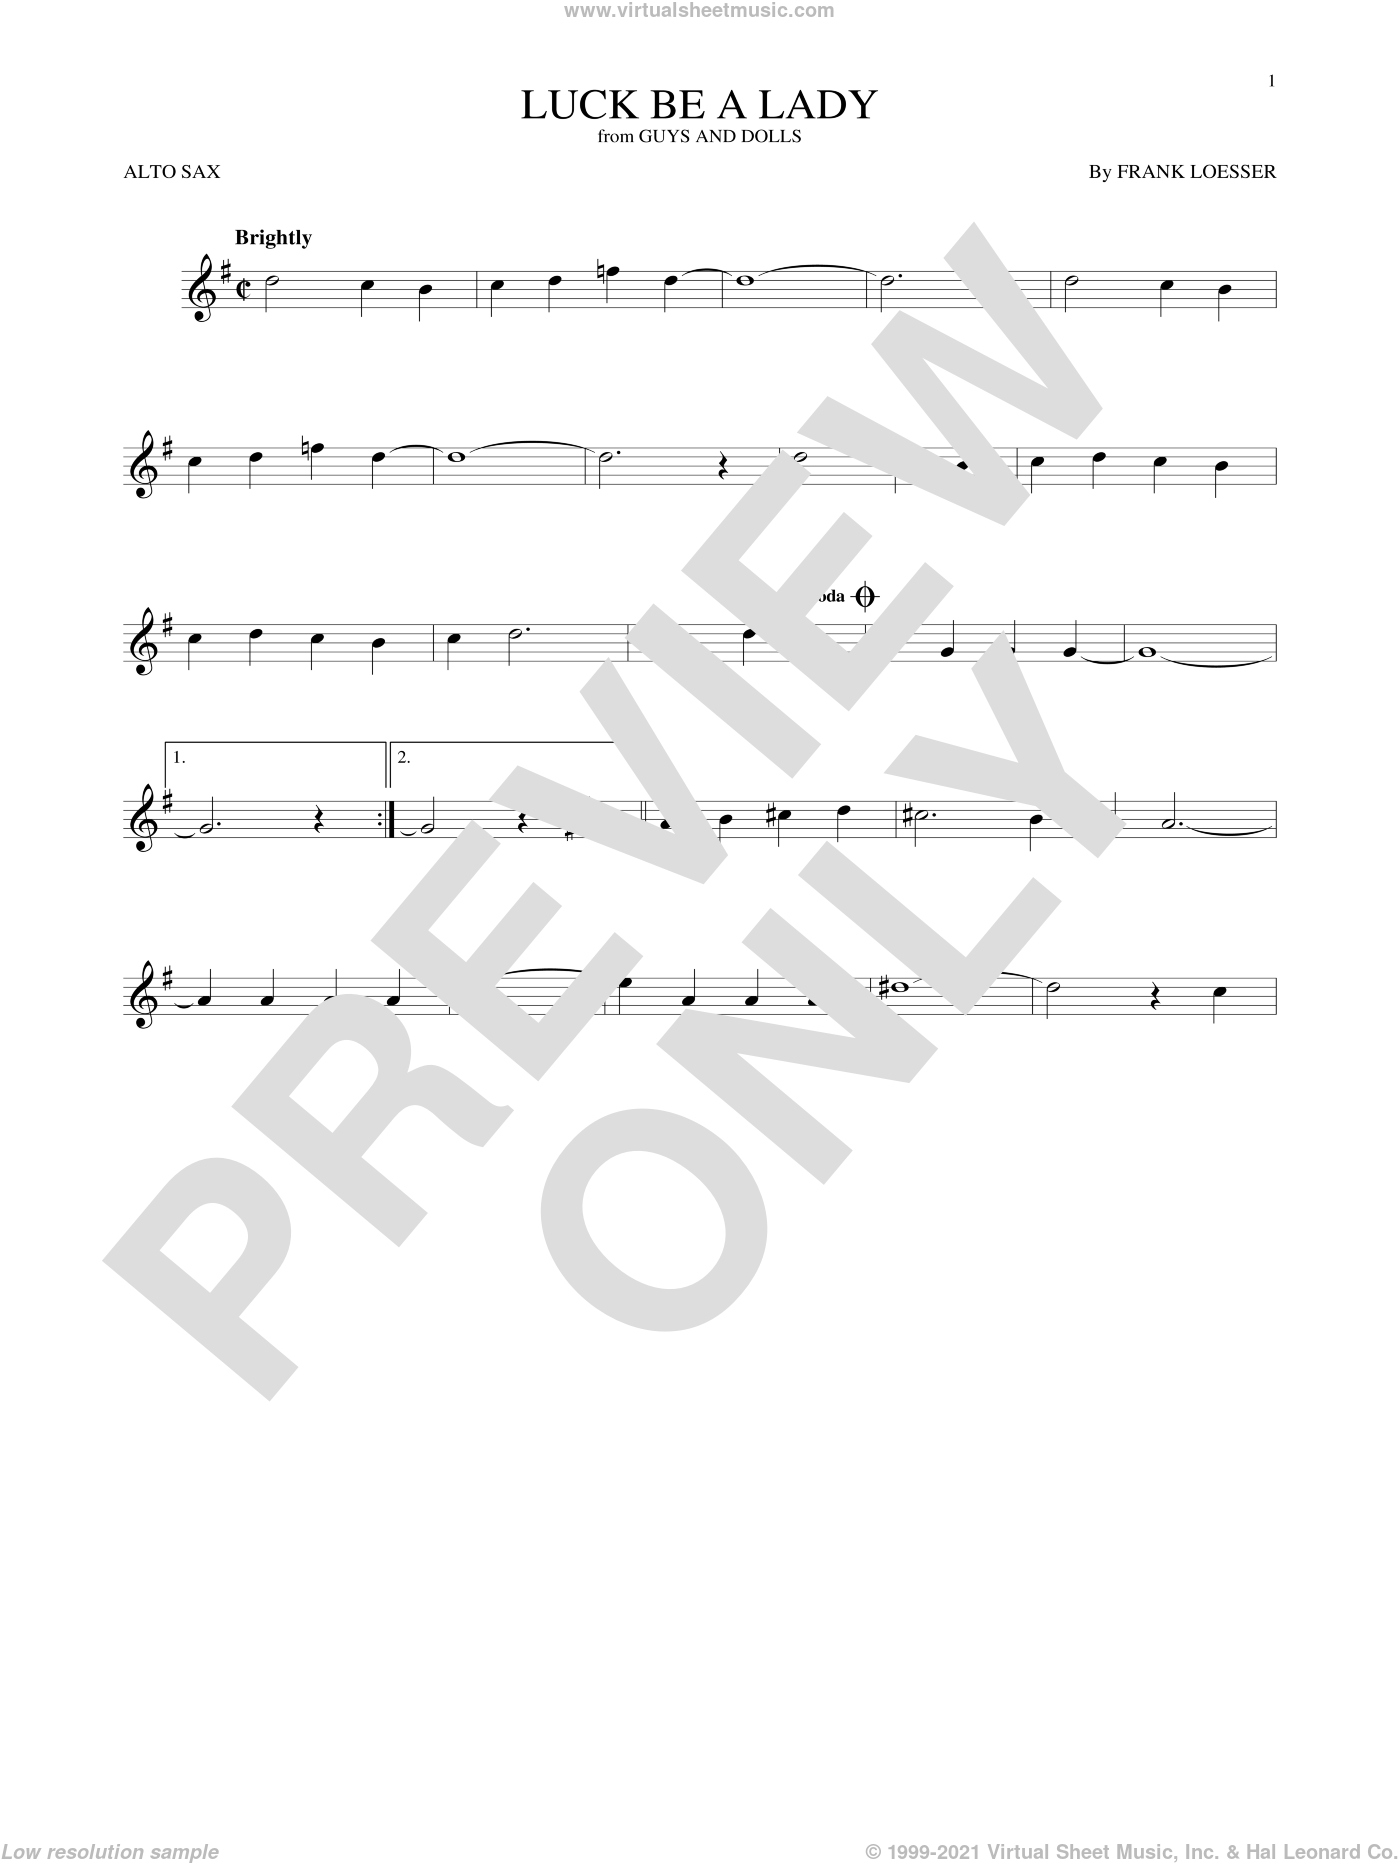 Luck Be A Lady sheet music for alto saxophone solo by Frank Loesser, intermediate skill level